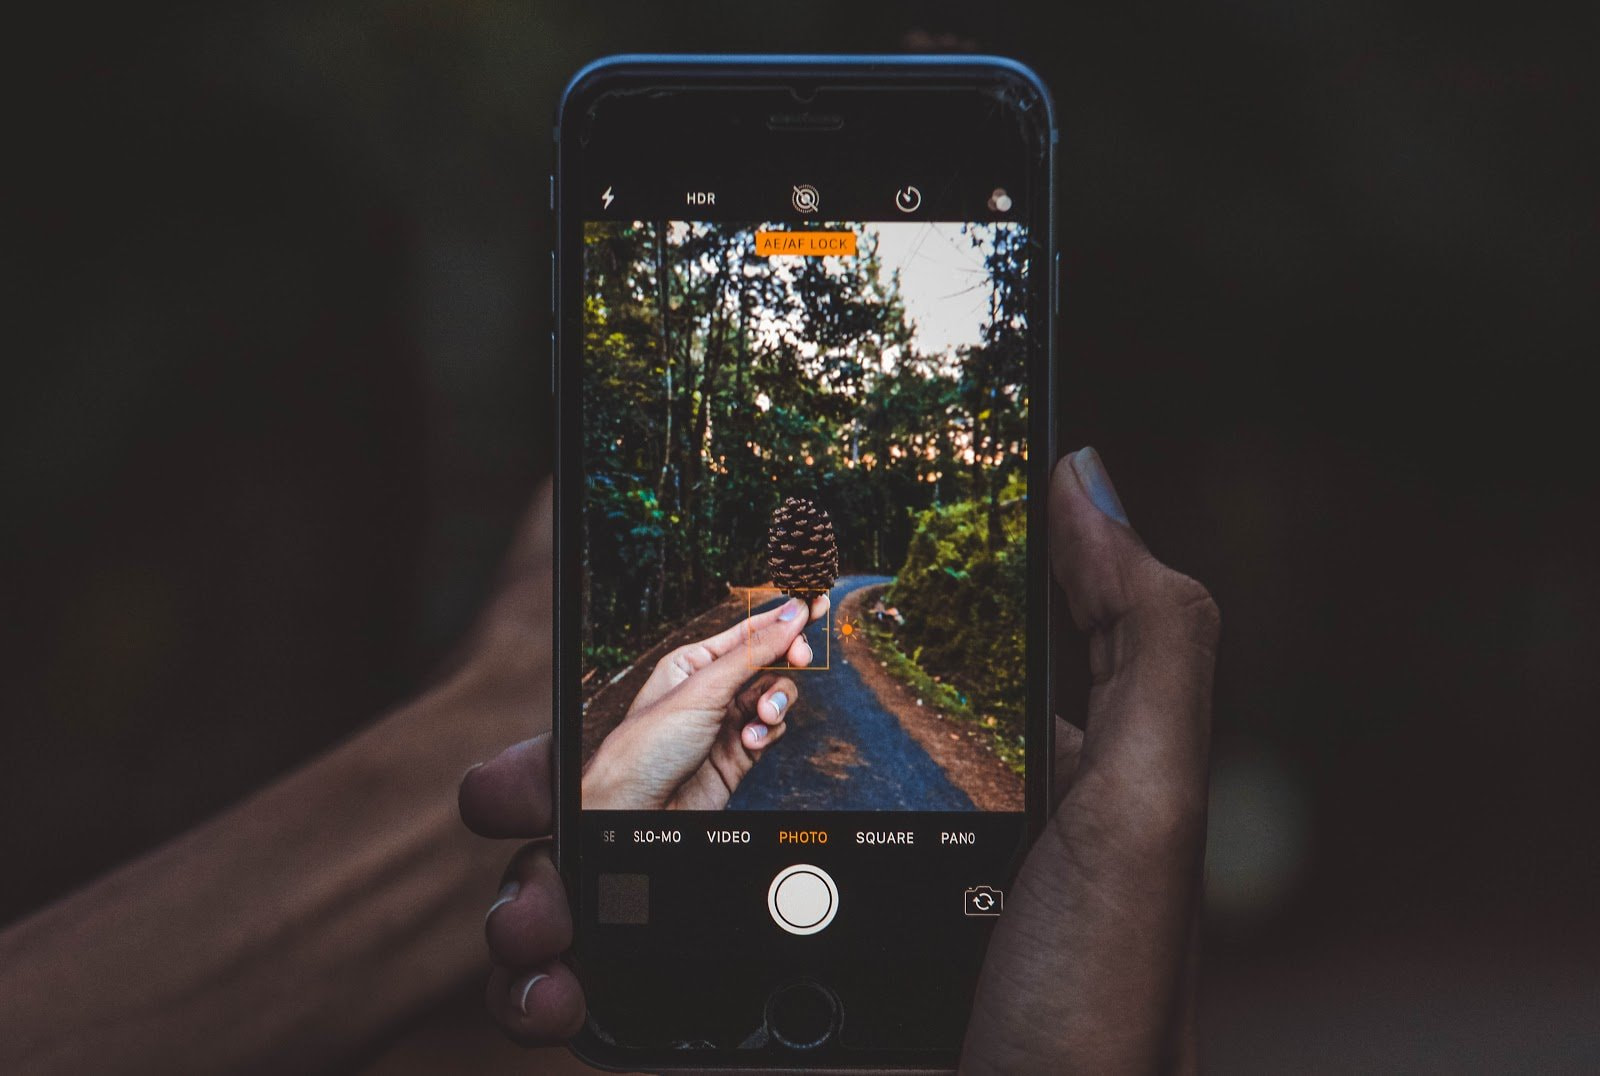 Hands holding a pinecone taking a picture using their phone on the other hand by Jatniel Tunon